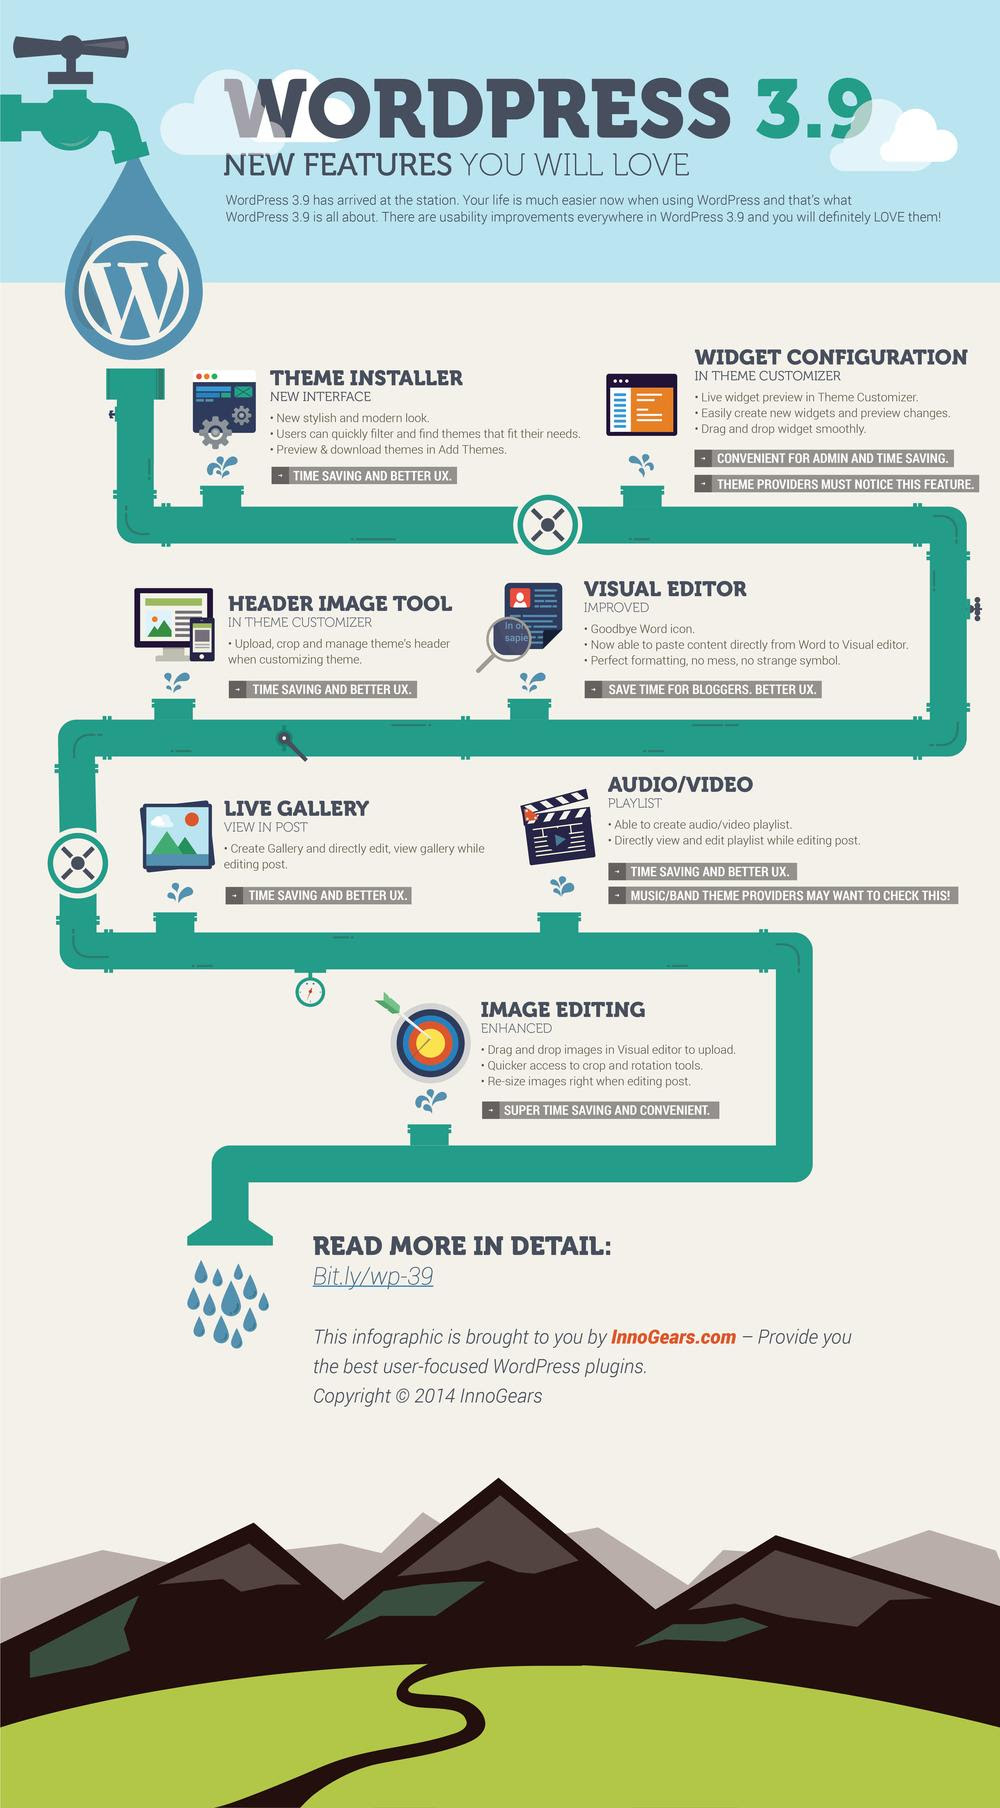 Infographic: WordPress 3.9 New Features You Will Love